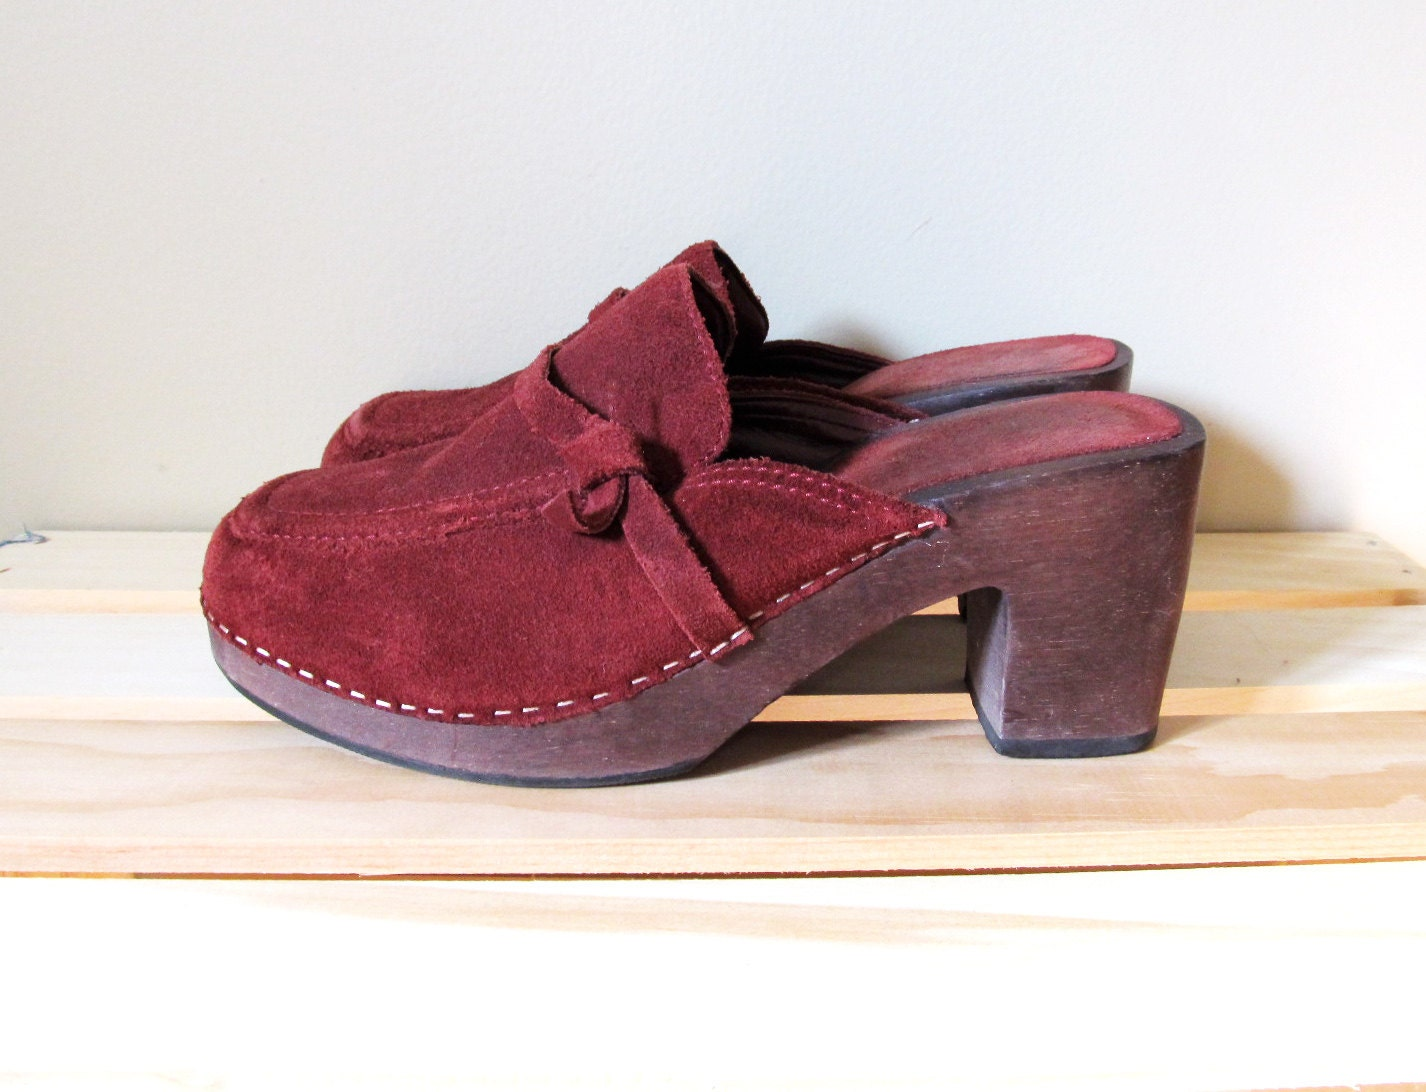 Vintage Clogs 70s Shoes Burgundy Red Suede Wooden Sole 1970s